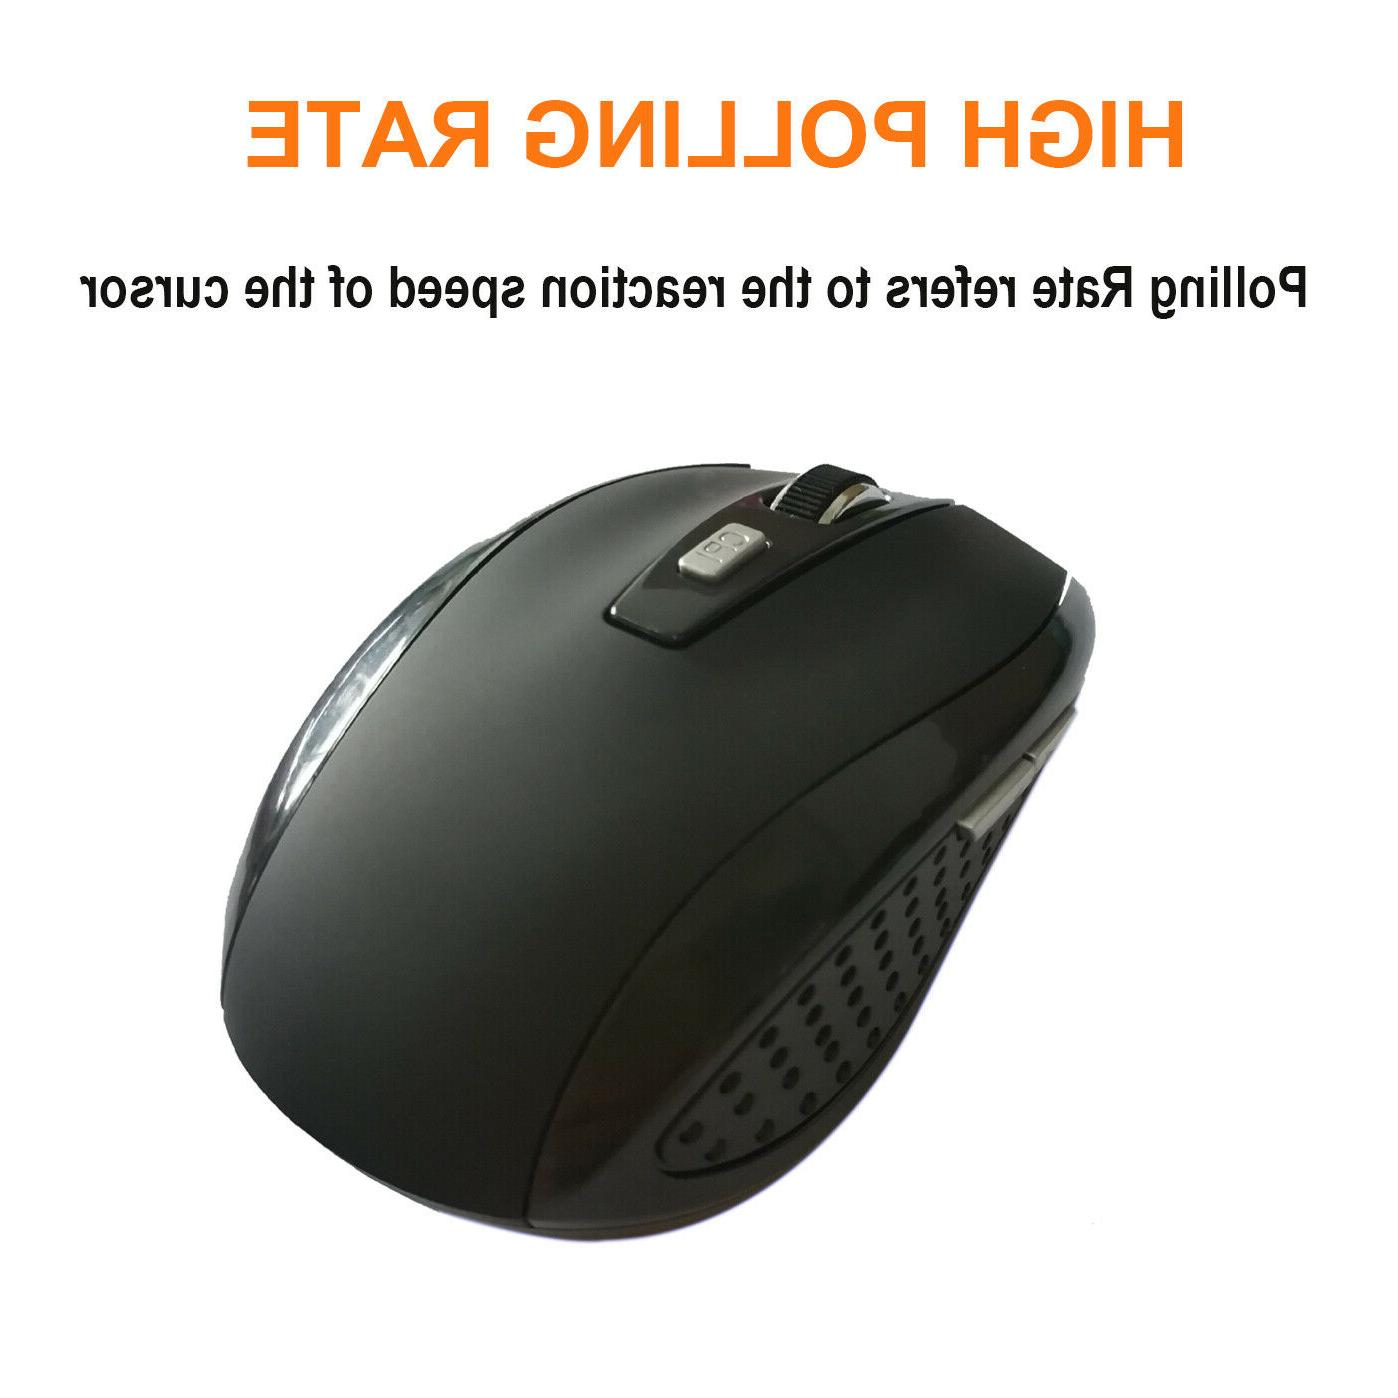 2.4GHz Quality Optical Mouse/Mice + USB 2.0 for PC Laptop